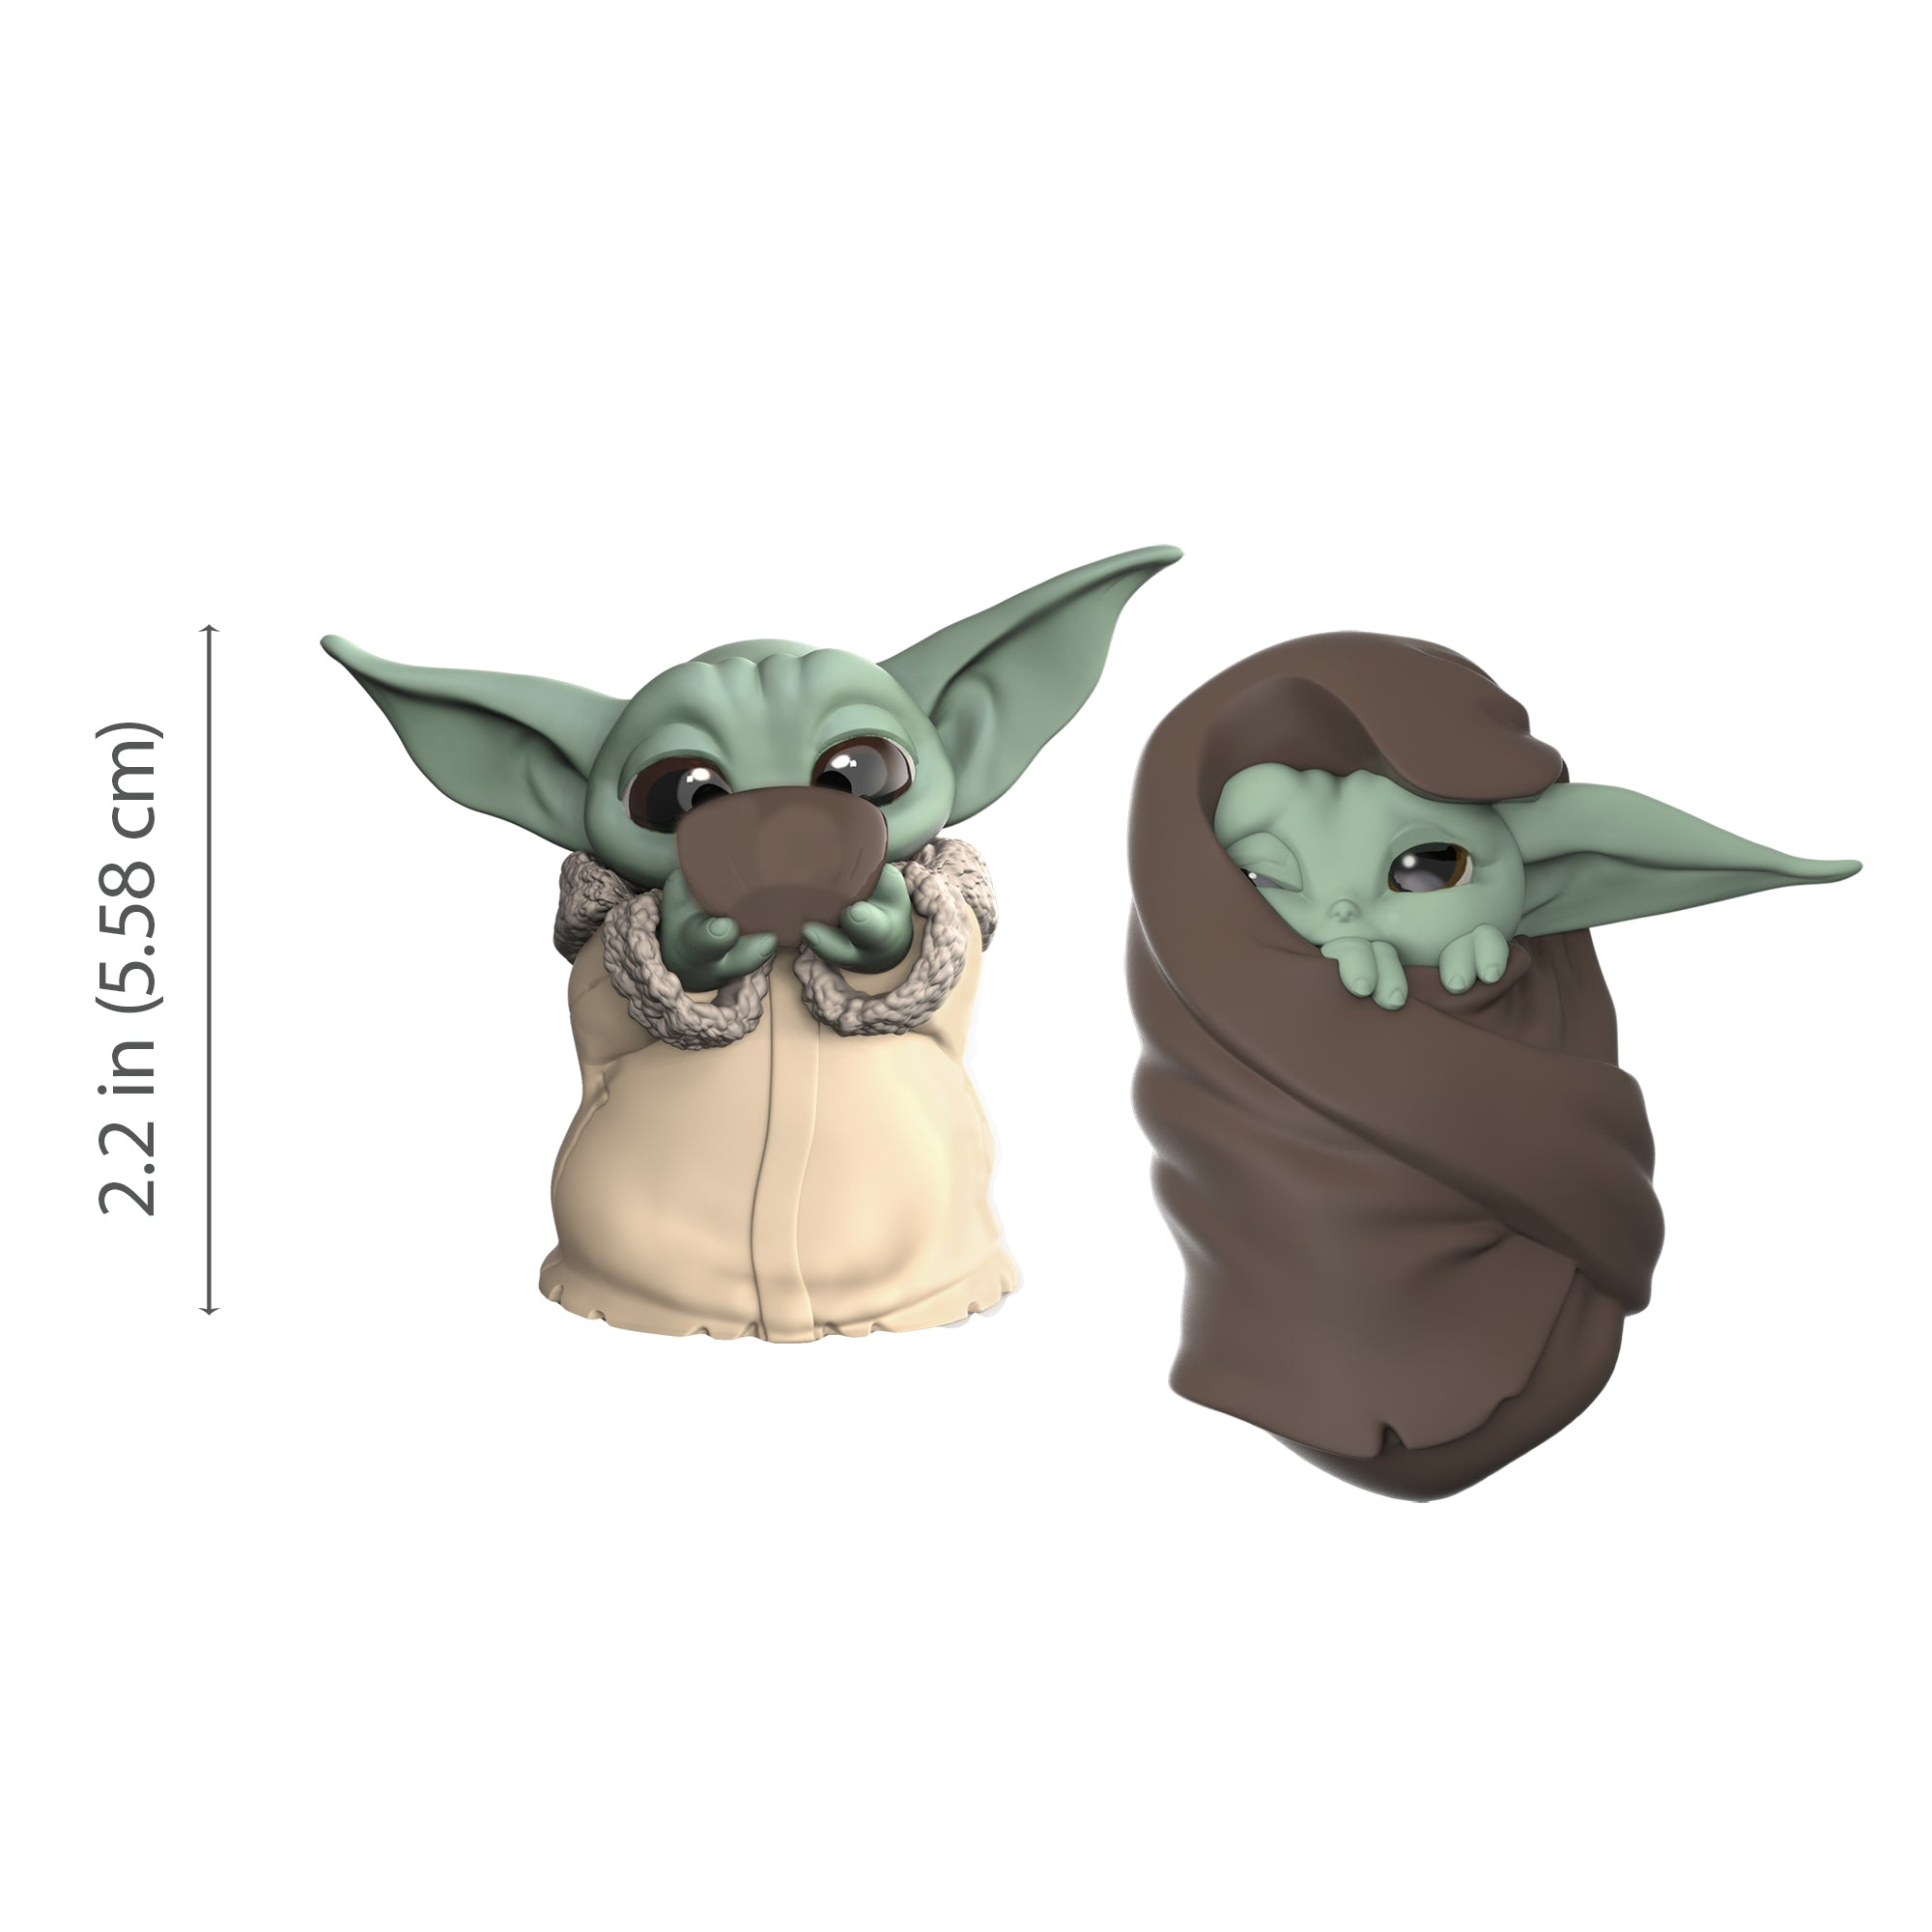 Star Wars The Bounty Collection, The Child 2.2-Inch Figures